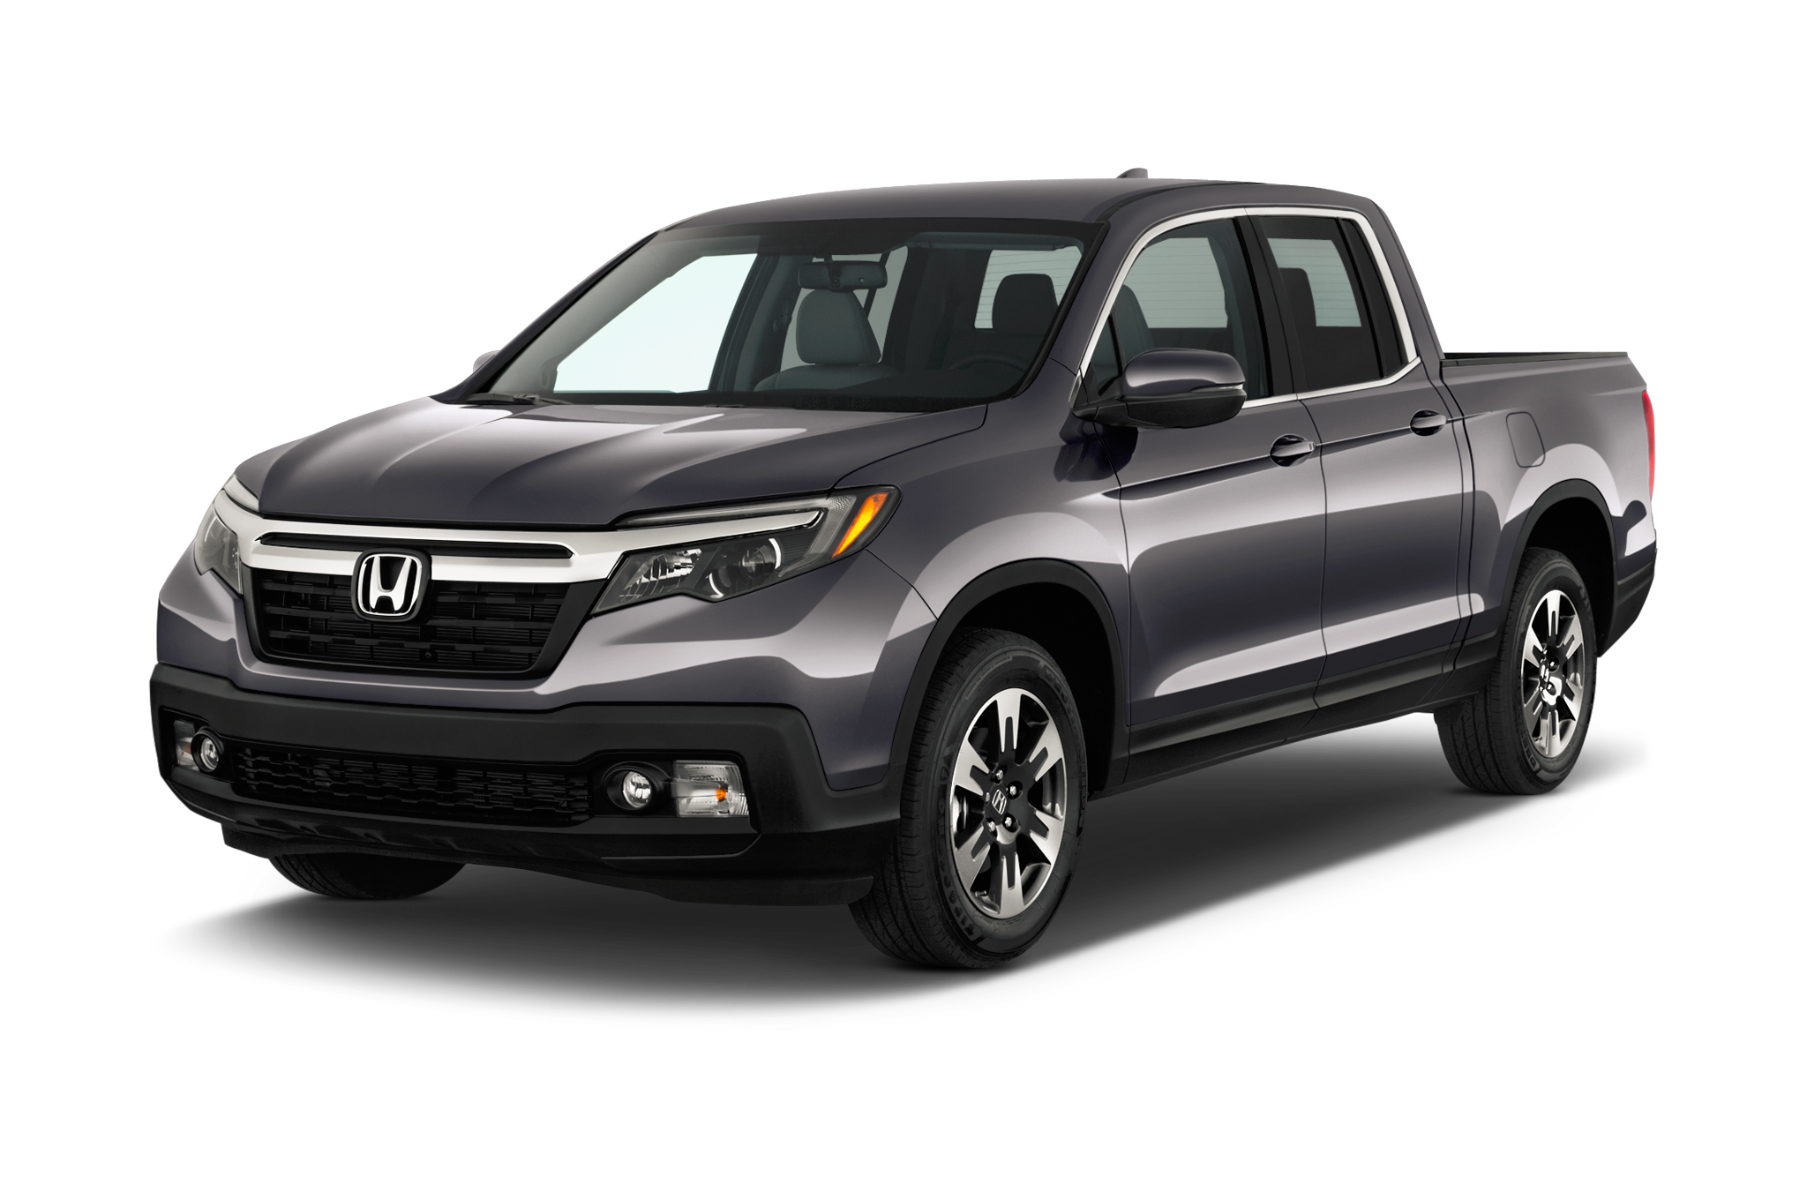 2017 Honda Ridgeline The New Benchmark For Mid Size Pickups By Fuel Filter Location More Details